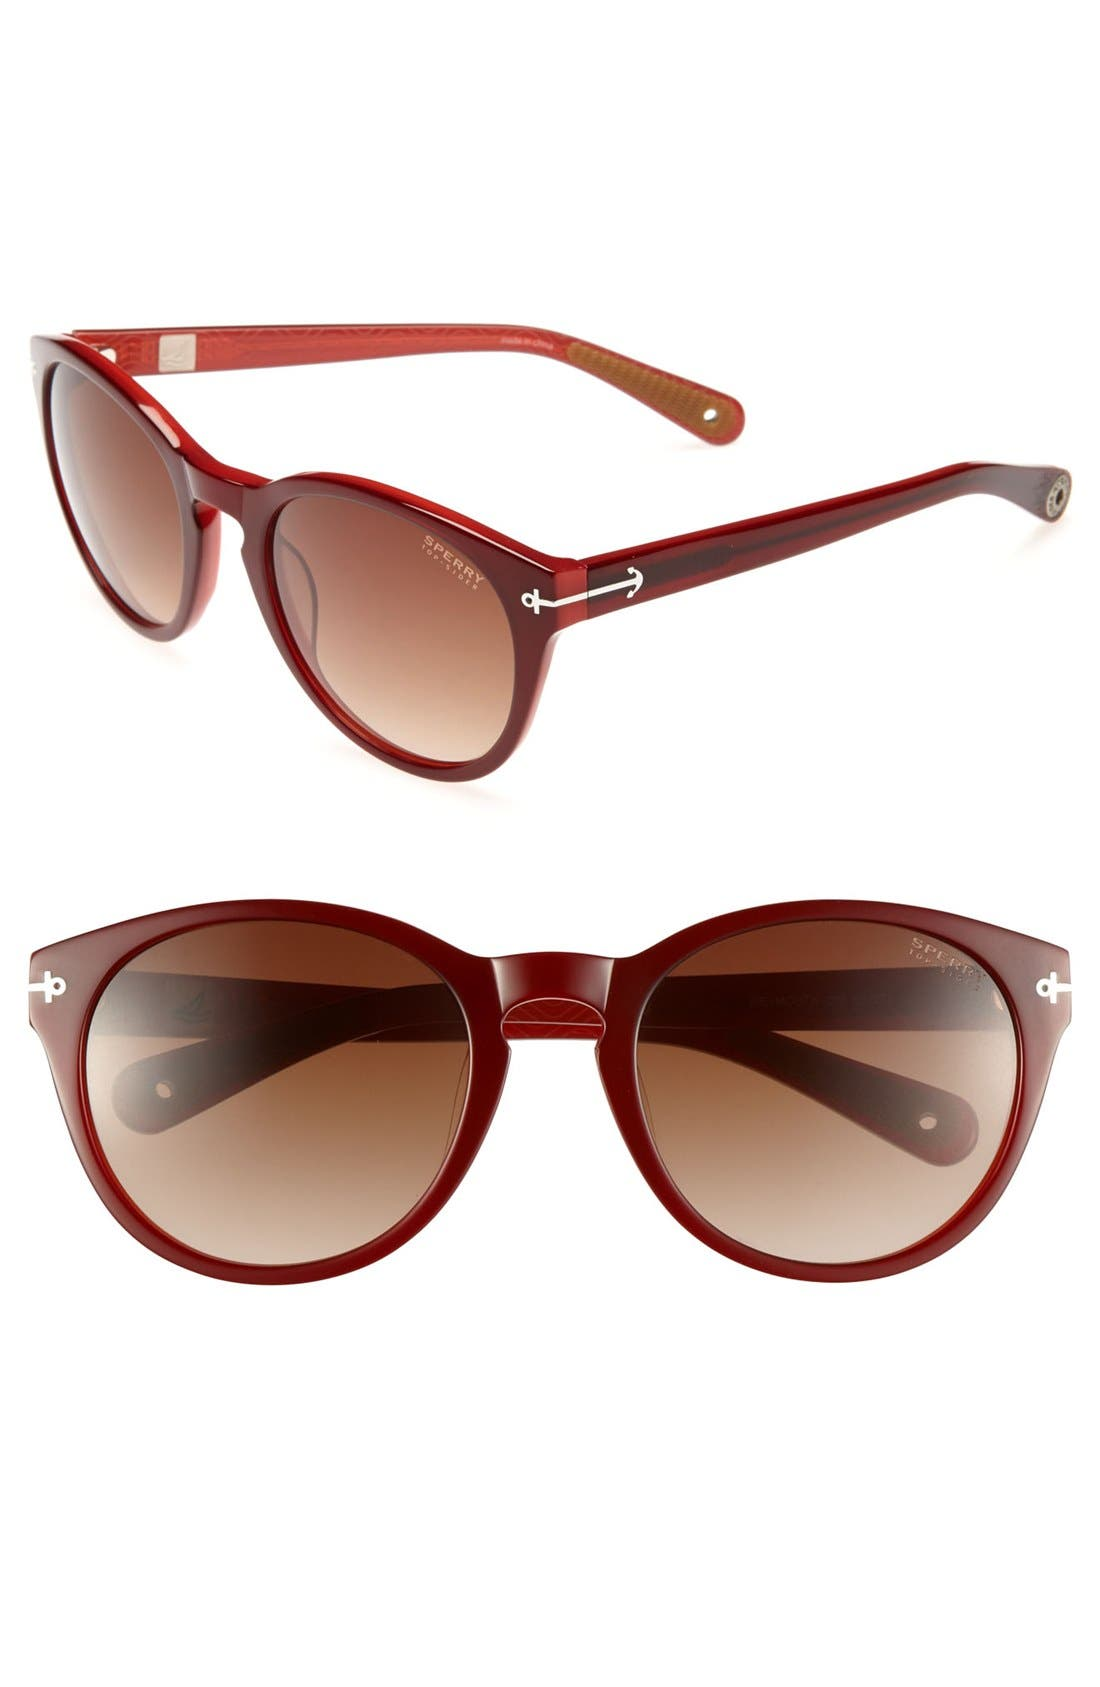 Alternate Image 1 Selected - Sperry Top-Sider® 'Weymouth' 55mm Sunglasses (Online Only)